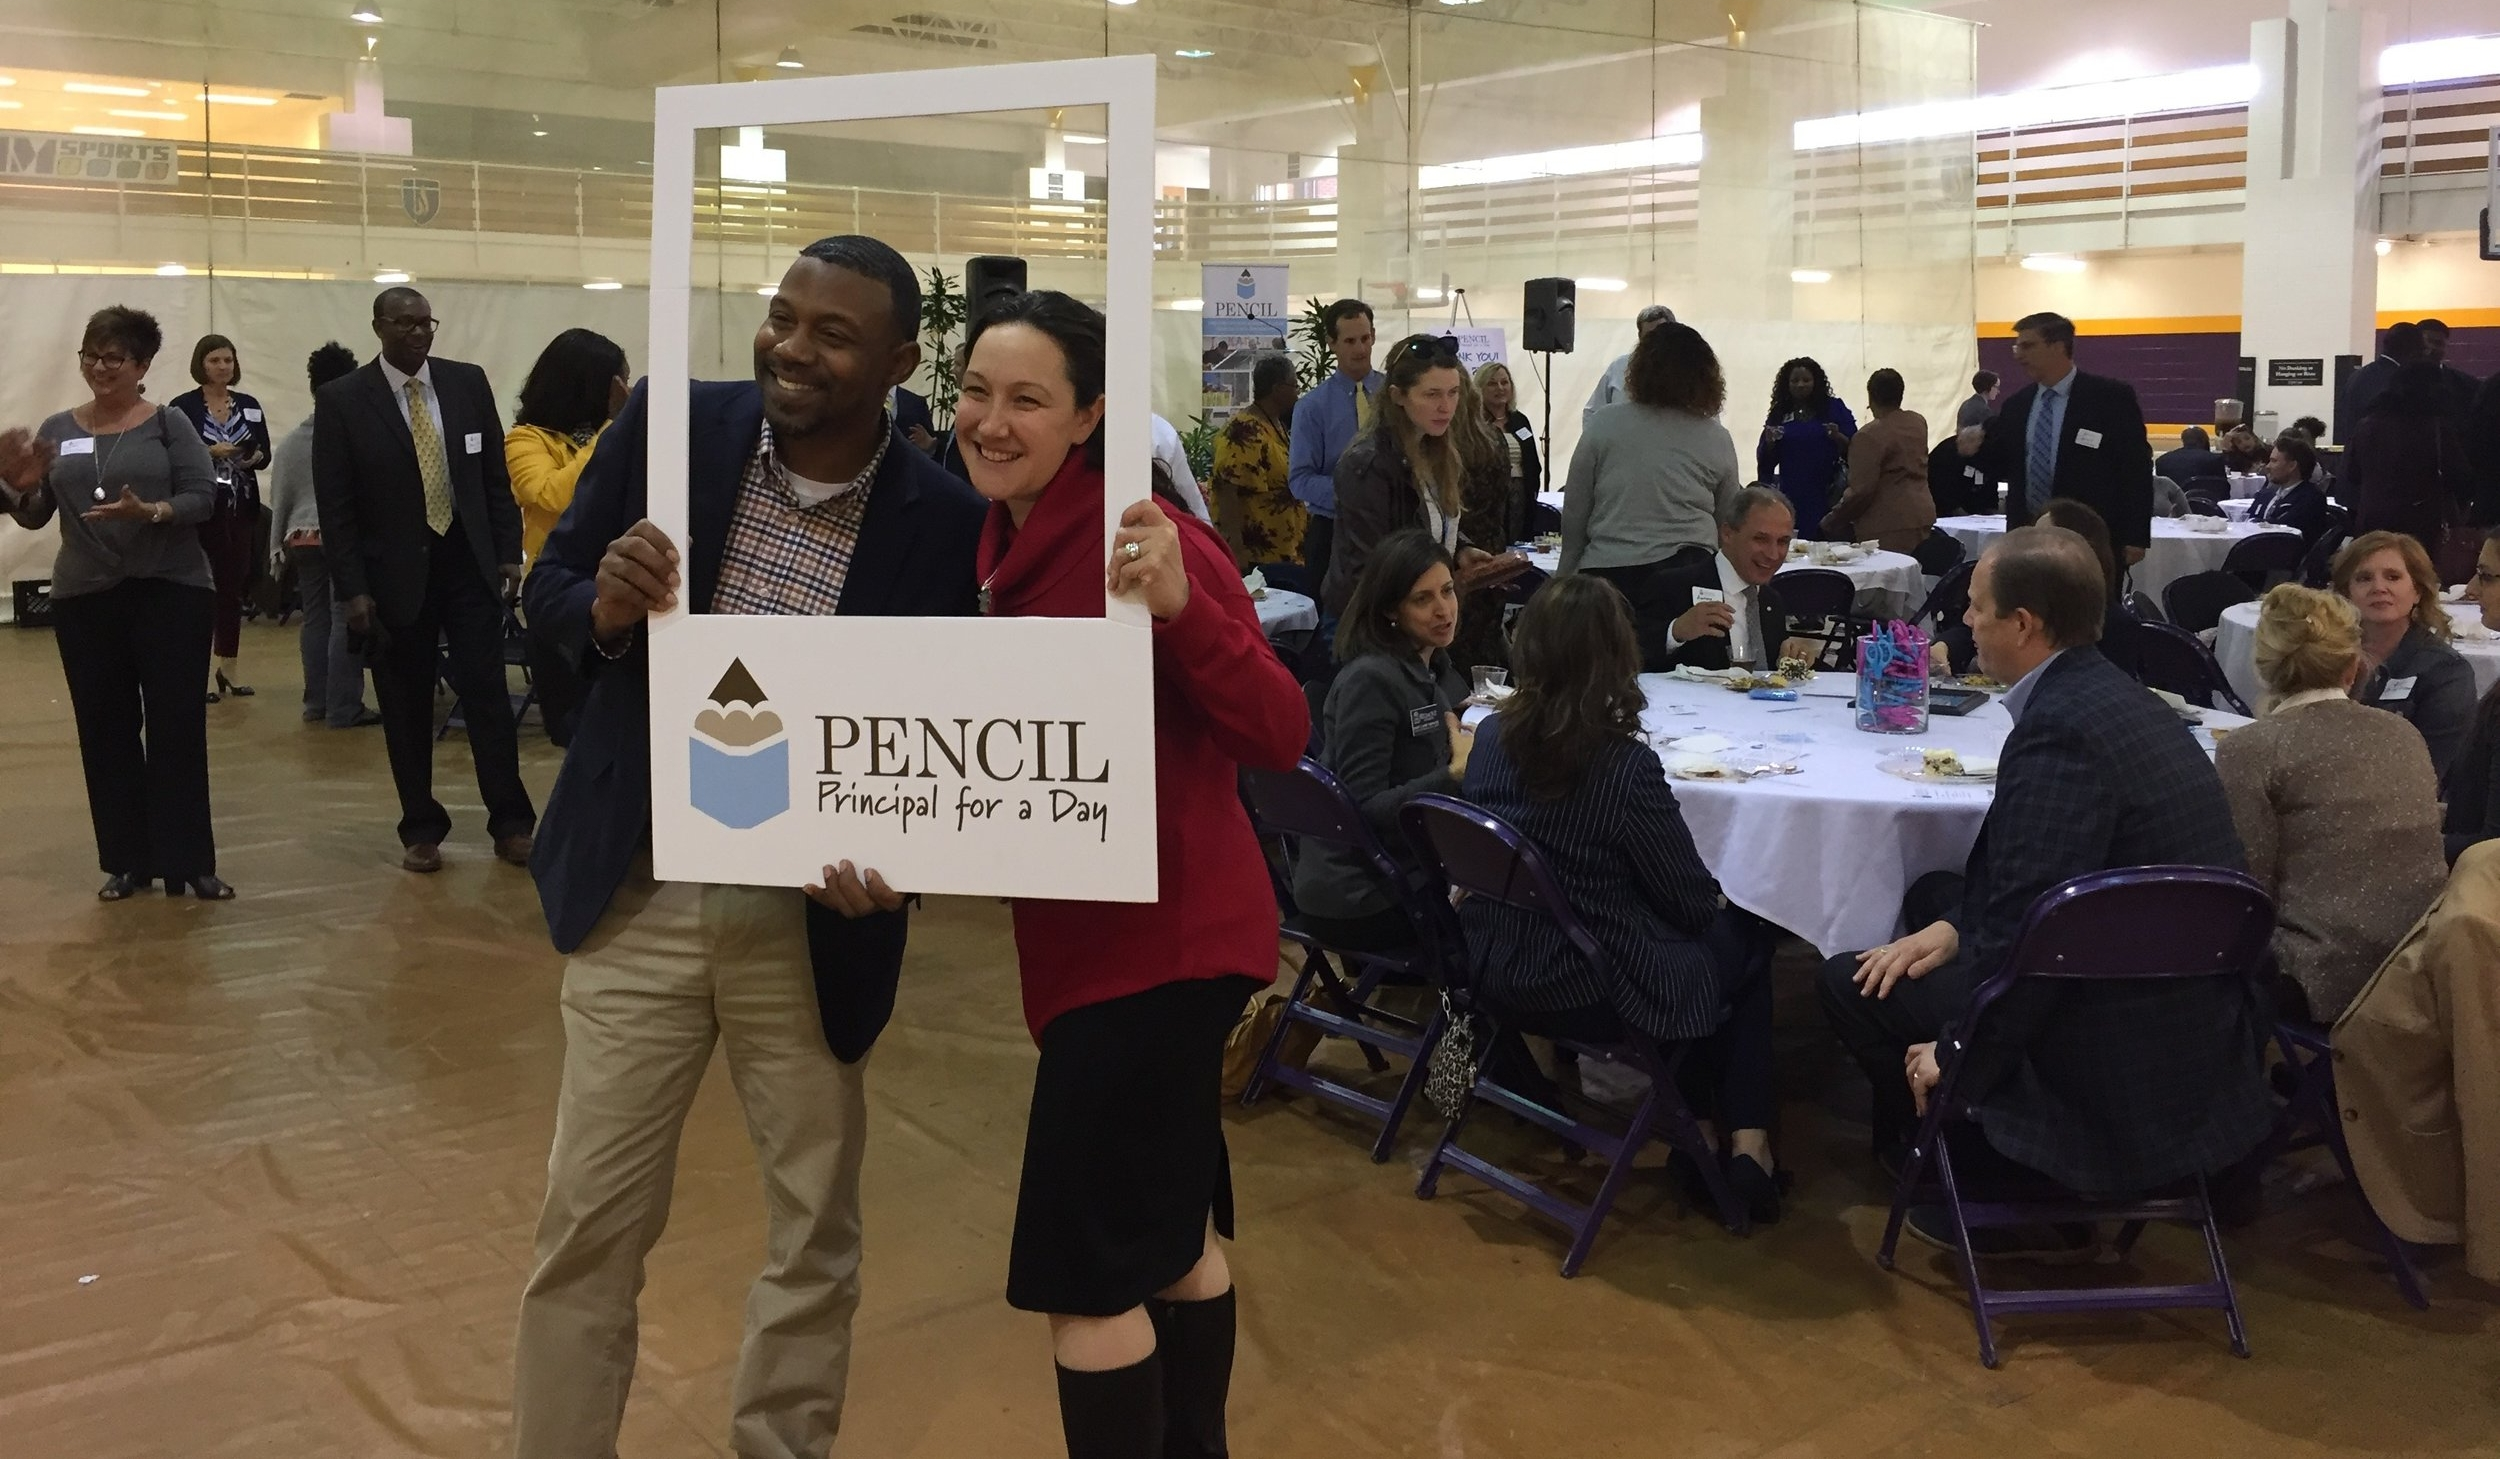 PENCIL Hosts 'Principal for a Day' Event In Metro Schools